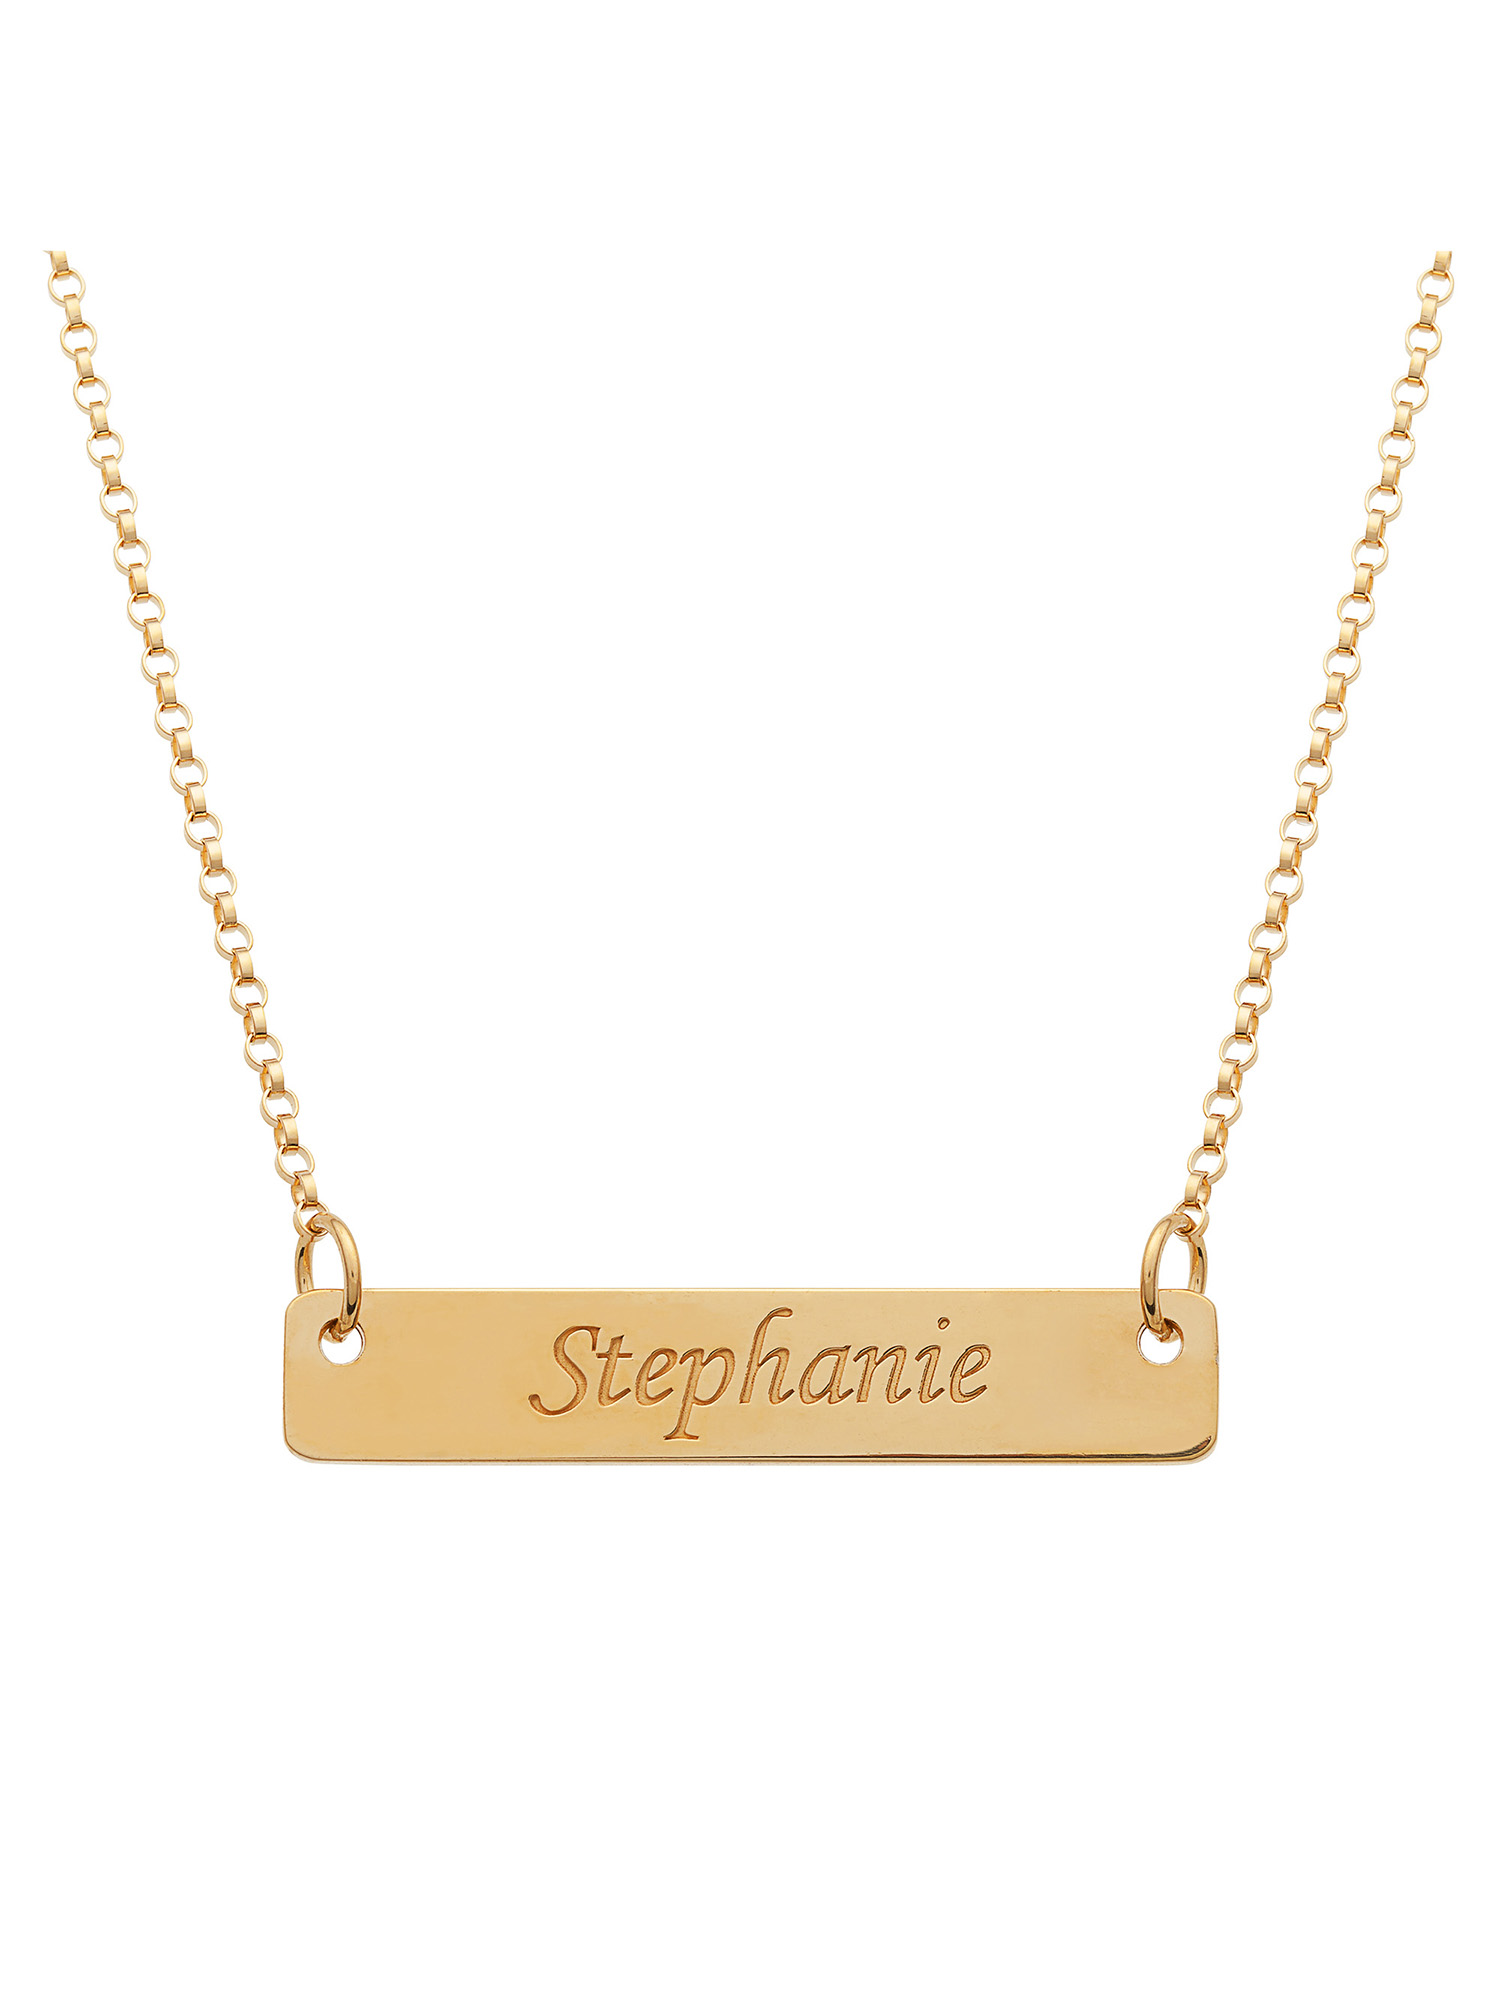 Personalized Gold over Sterling Silver Name Bar Pendant